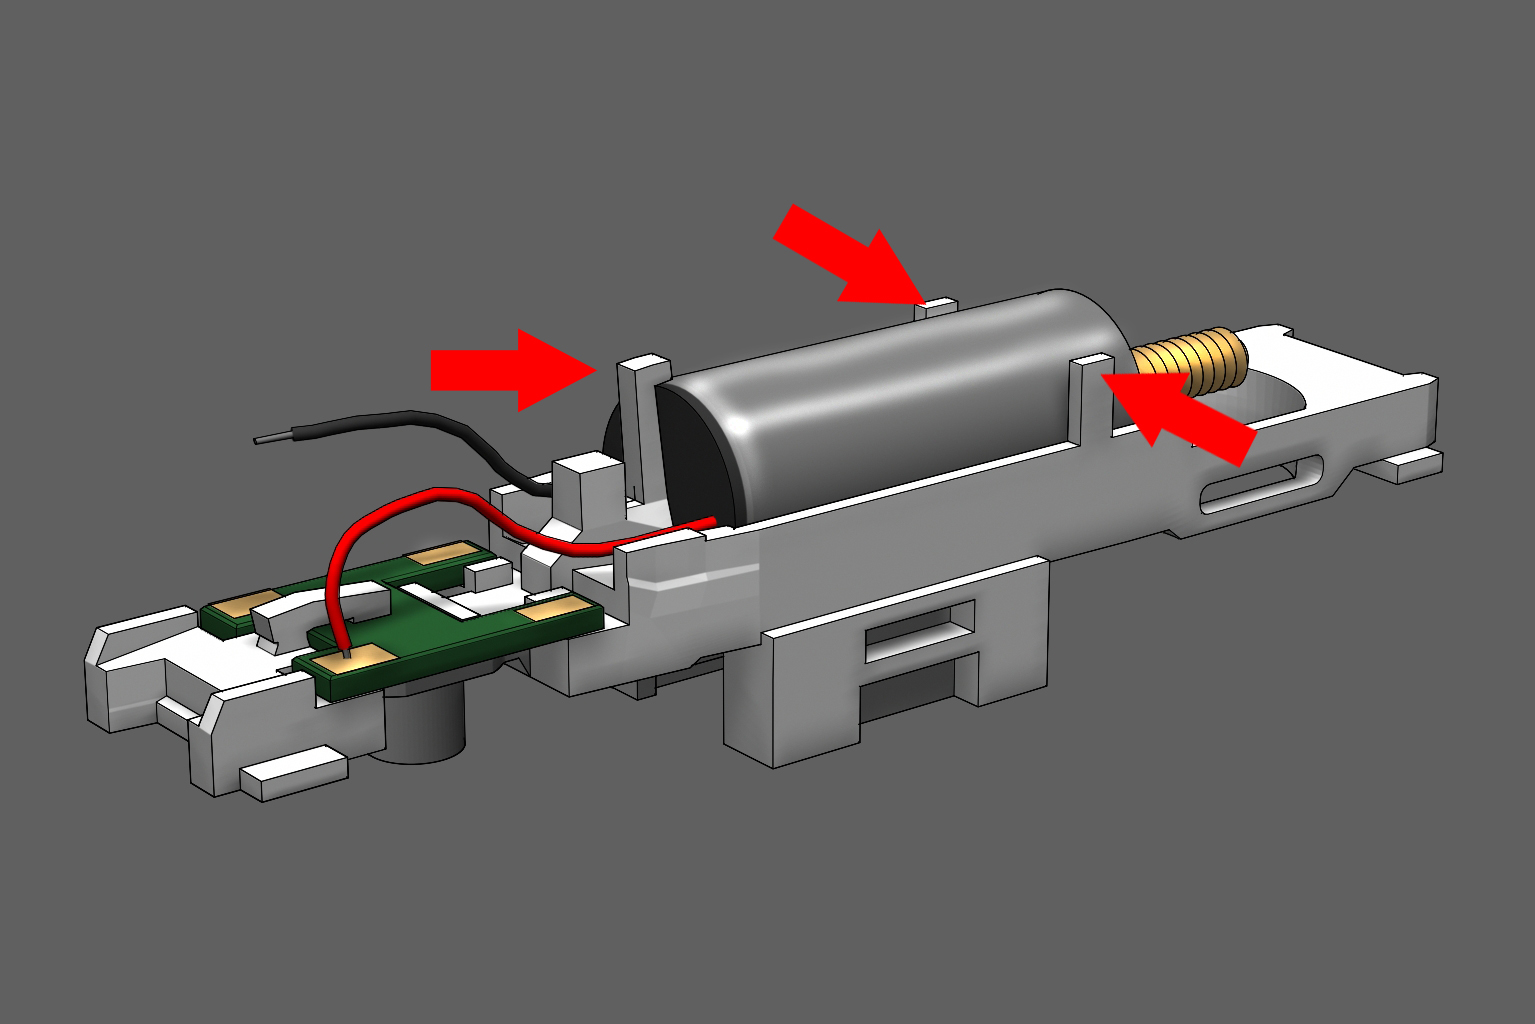 Step 10 - There are tabs on each side of the motor and a clamp at the rear. Push all three inward until they hold the motor firmly in place.